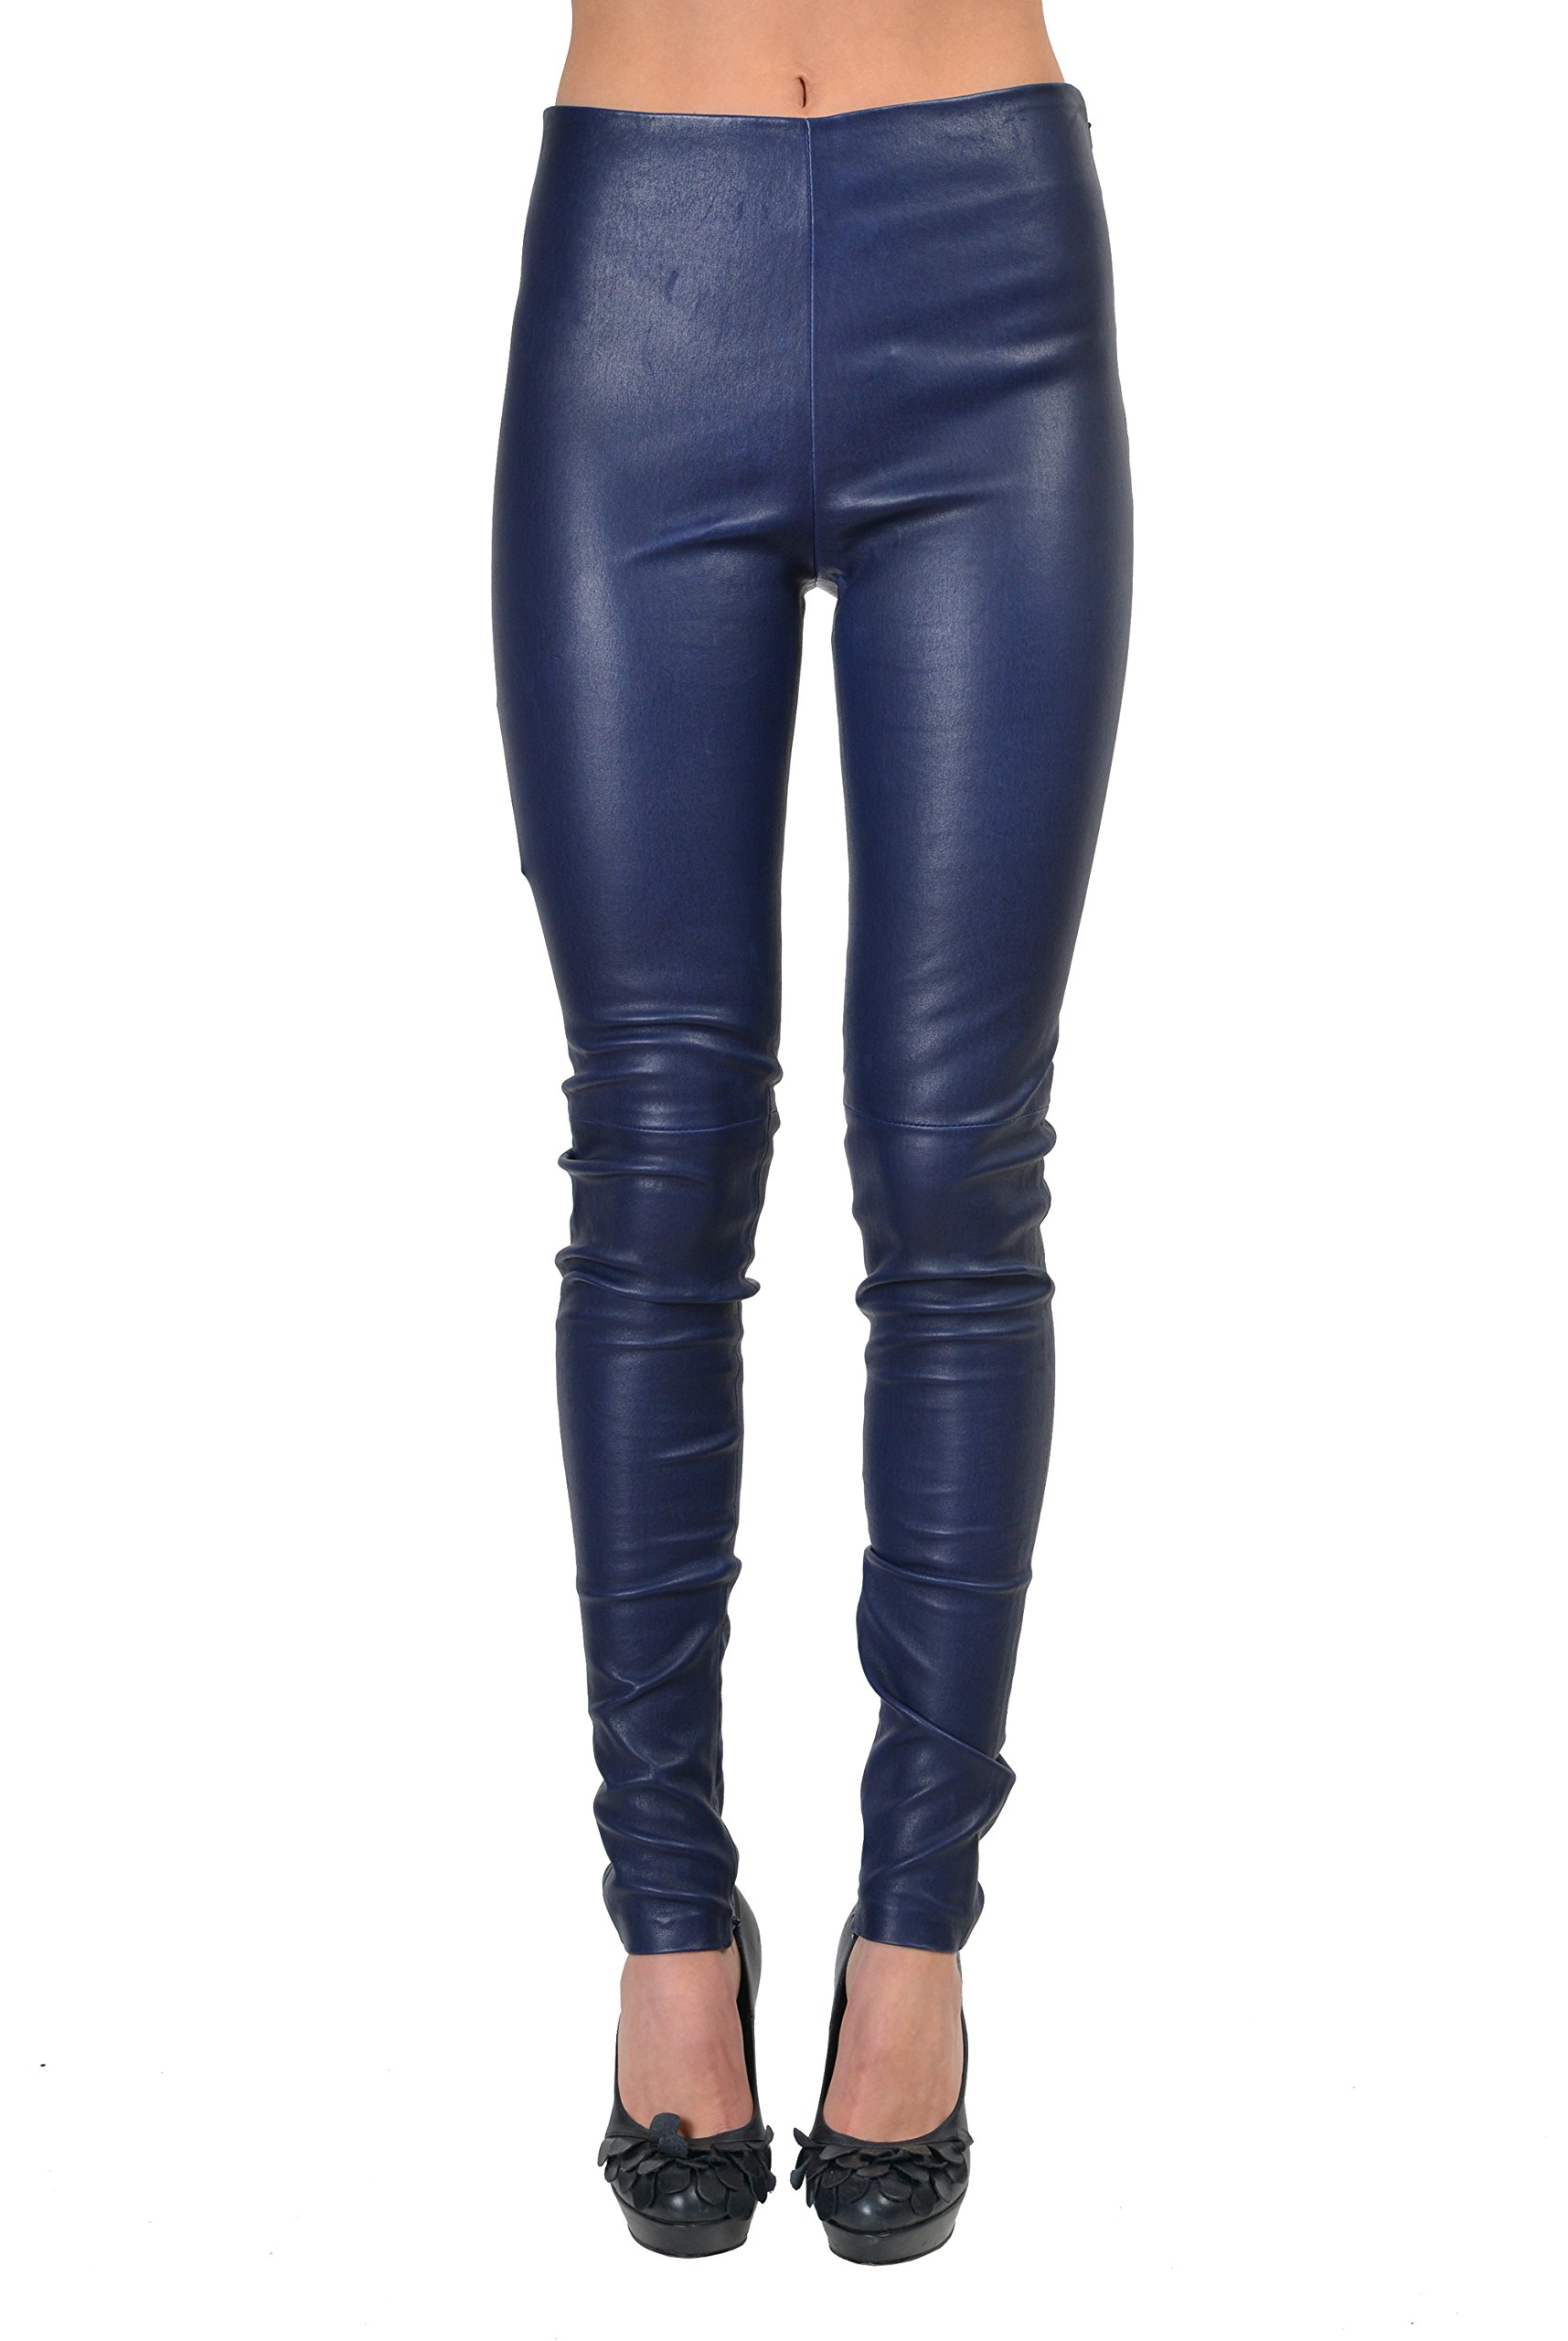 Balenciaga 100% Leather Navy Slim Fit Women's Casual Pants US 0 IT 36